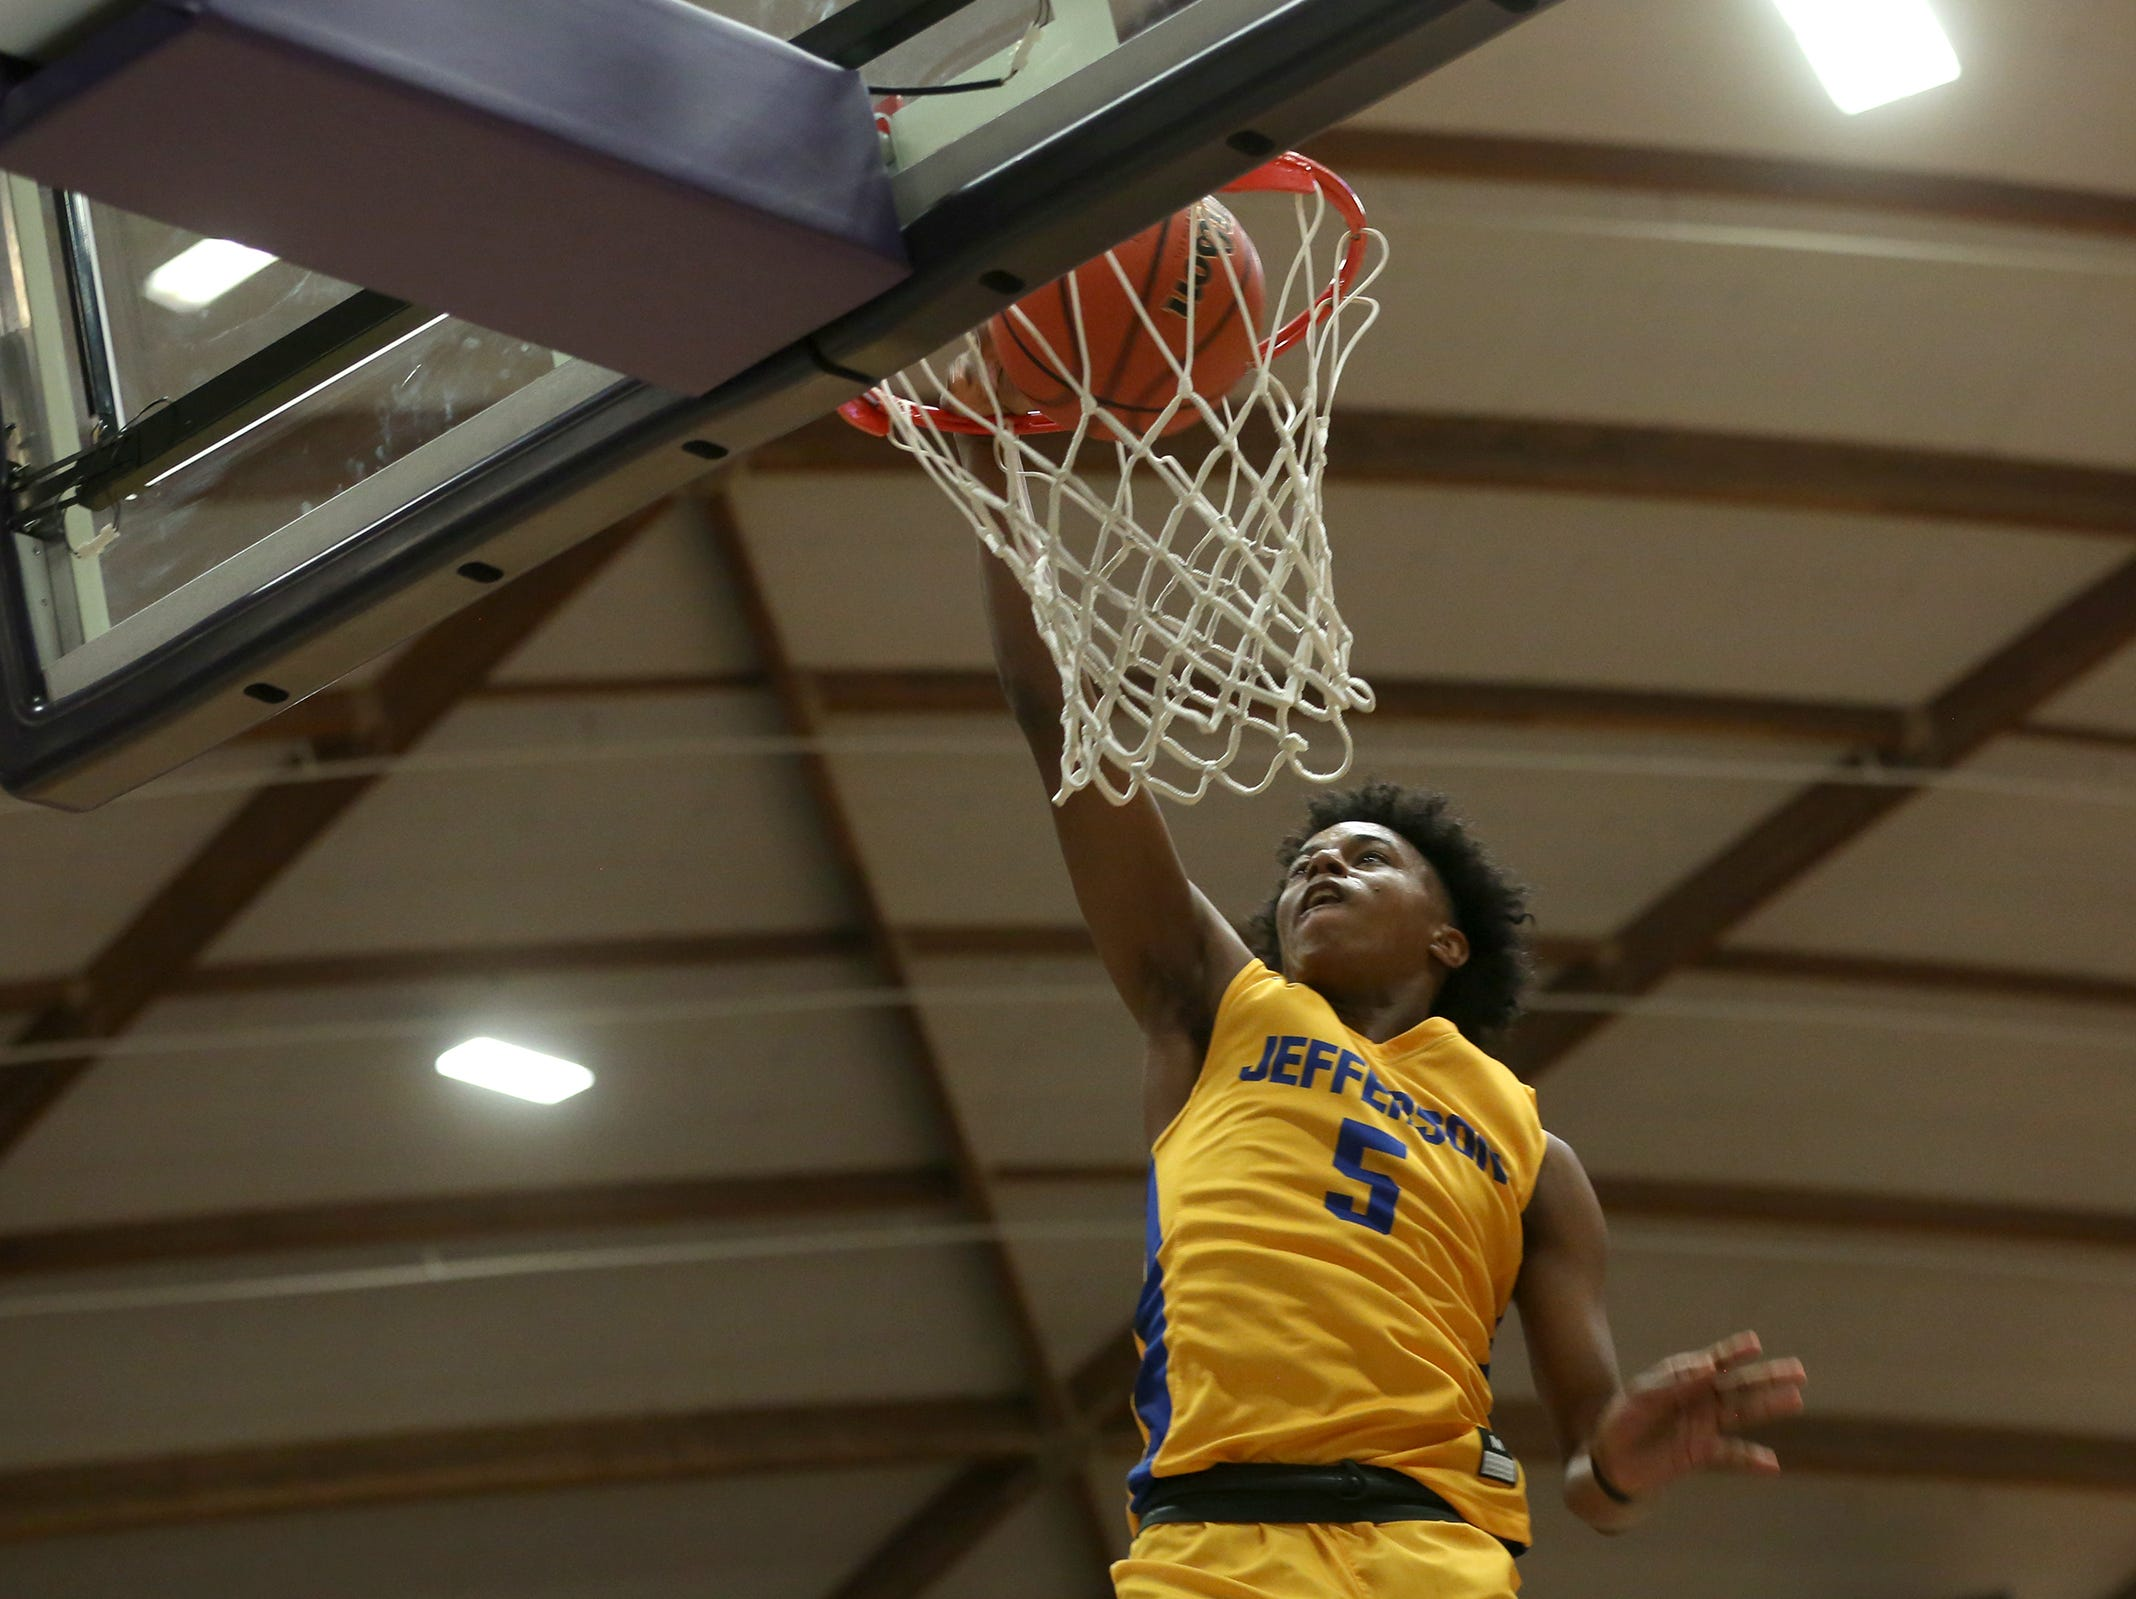 South Salem's Keylin Vance (5) gets a dunk in during the South Salem vs. Jefferson boys basketball OSAA 6A semifinal game at Chiles Center in Portland on Friday, March 8, 2019.